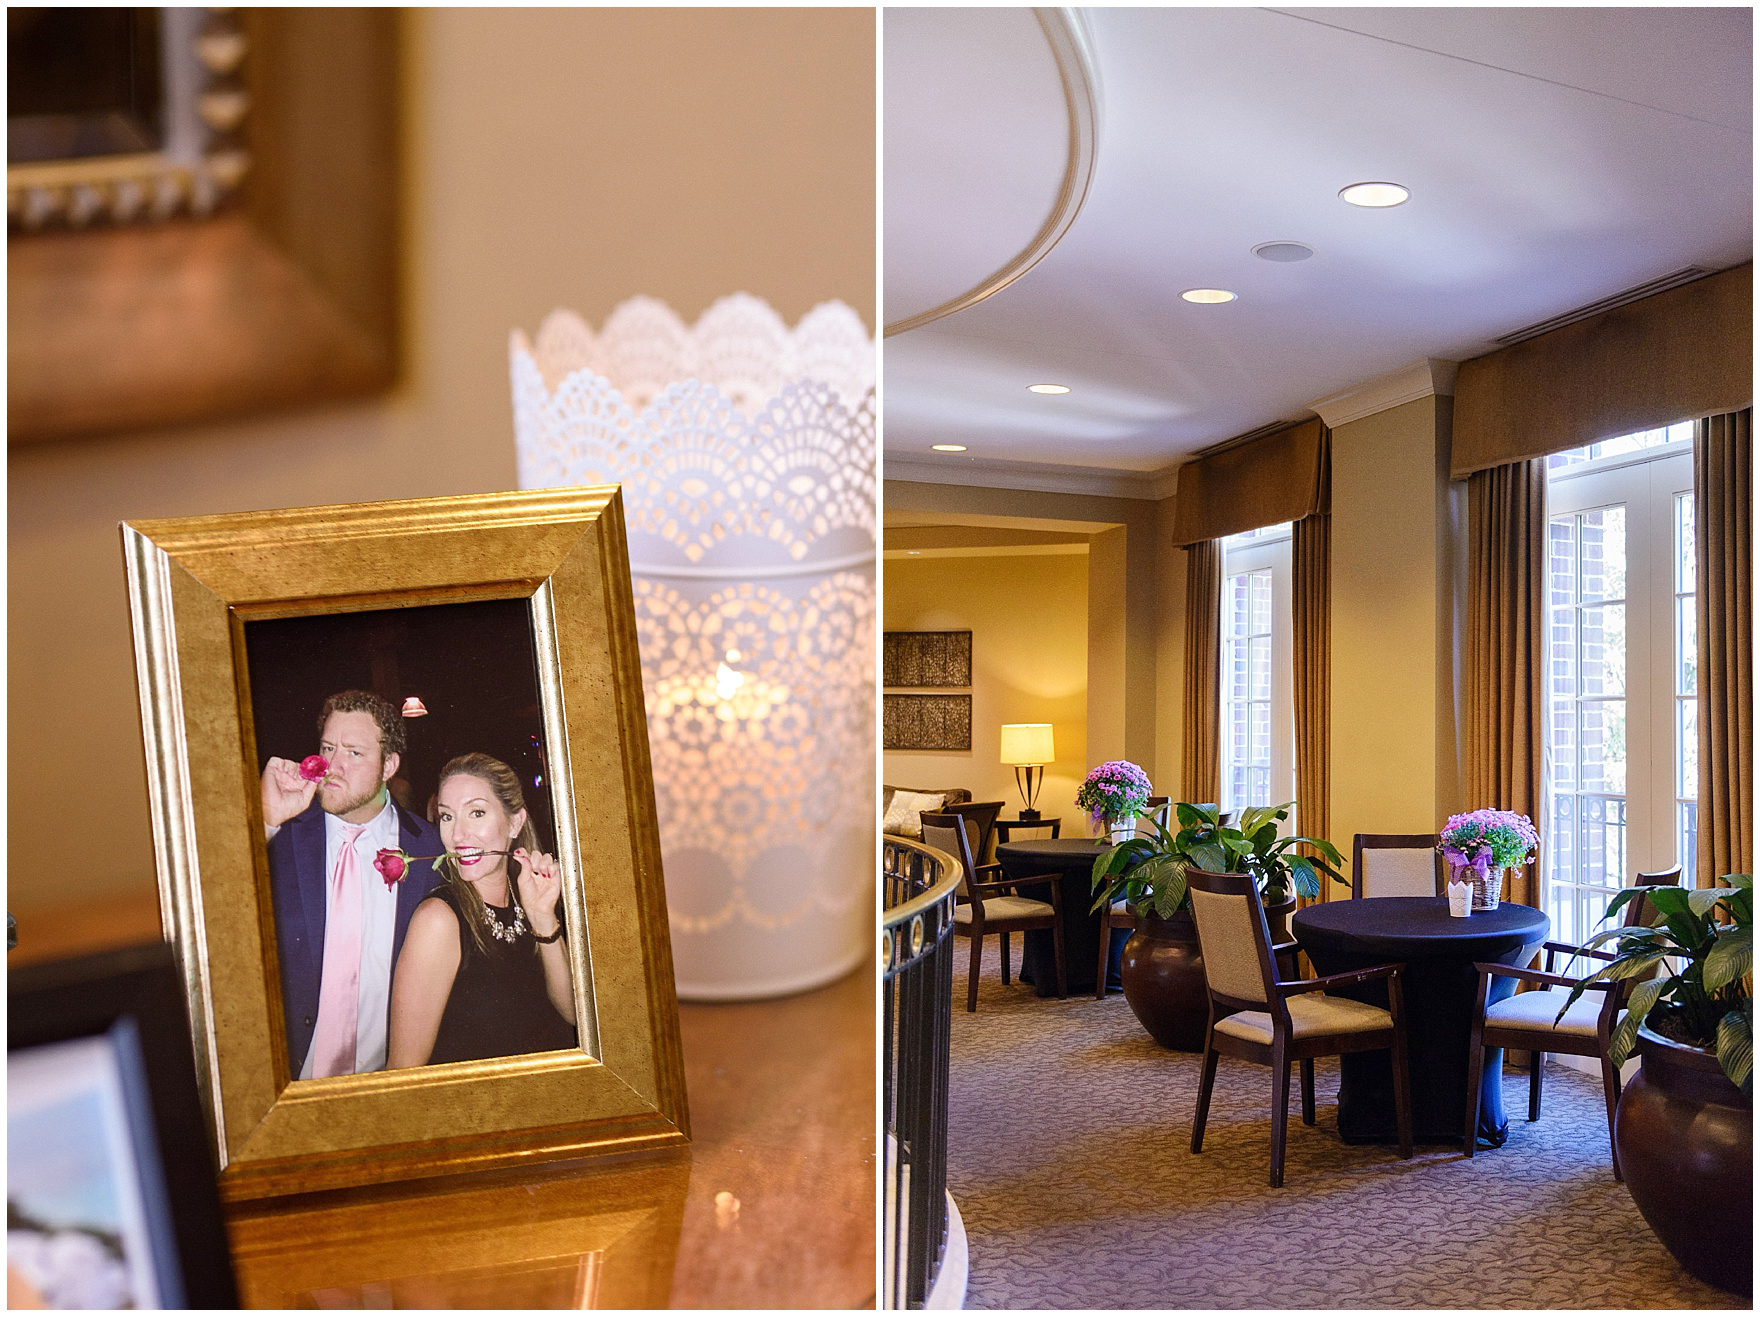 Framed photos and flowers decorate the cocktail space for a Glen Club Glenview Illinois wedding.